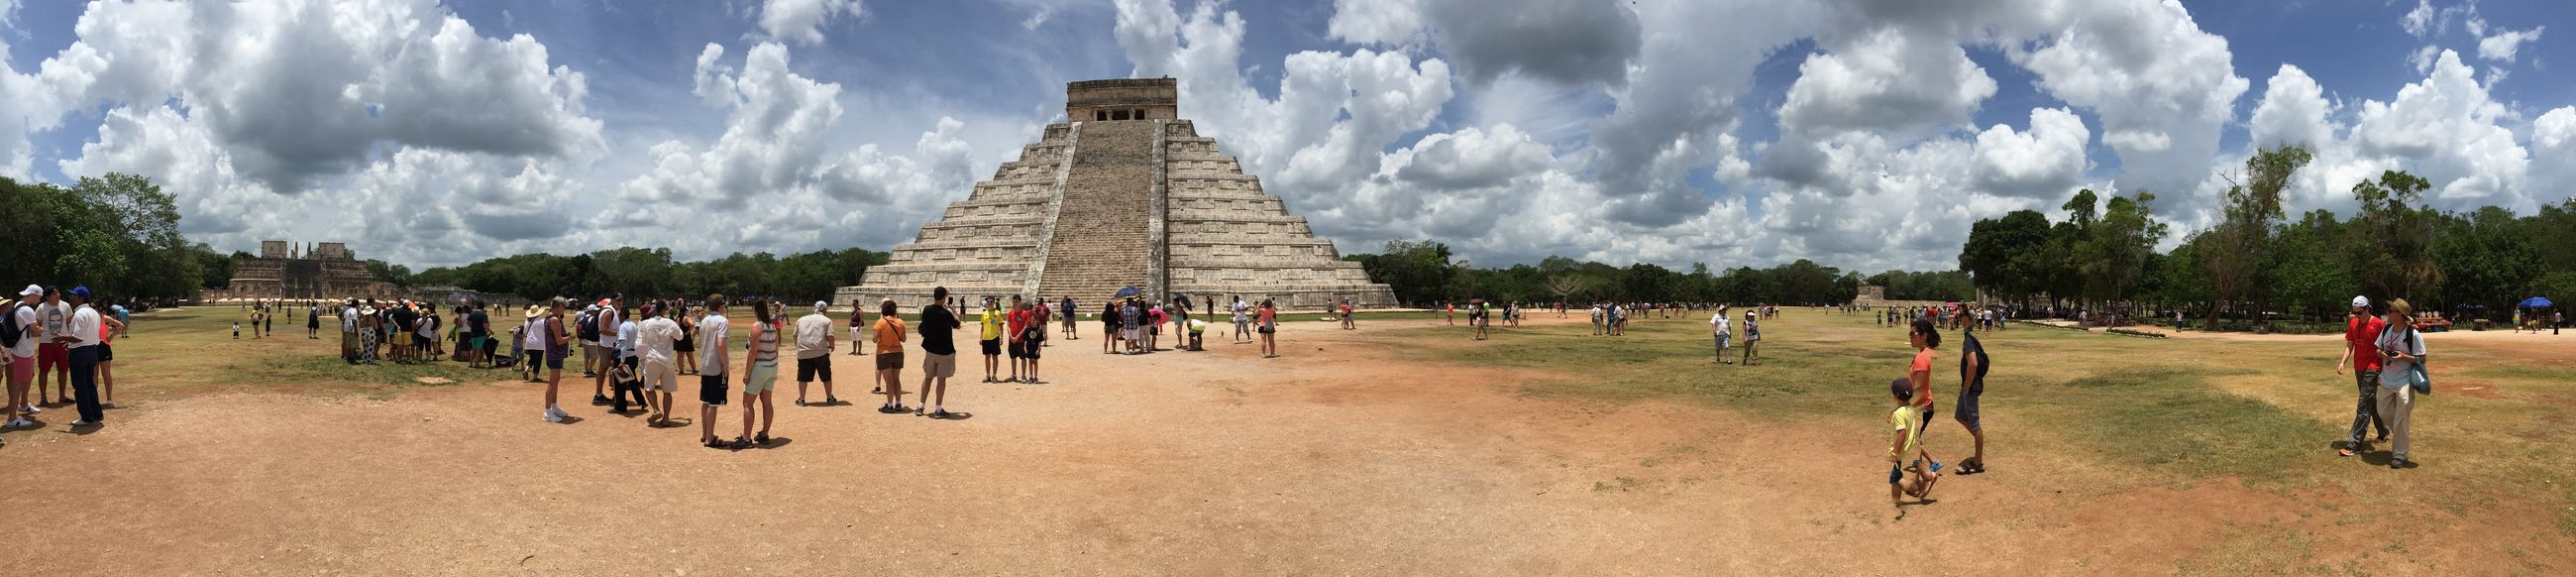 Chichen Itza Yúcatan Yucatan Mexico Architecture Panoramic Photography Check This Out 7th Wonder Of World Mayan Ruins Landscape